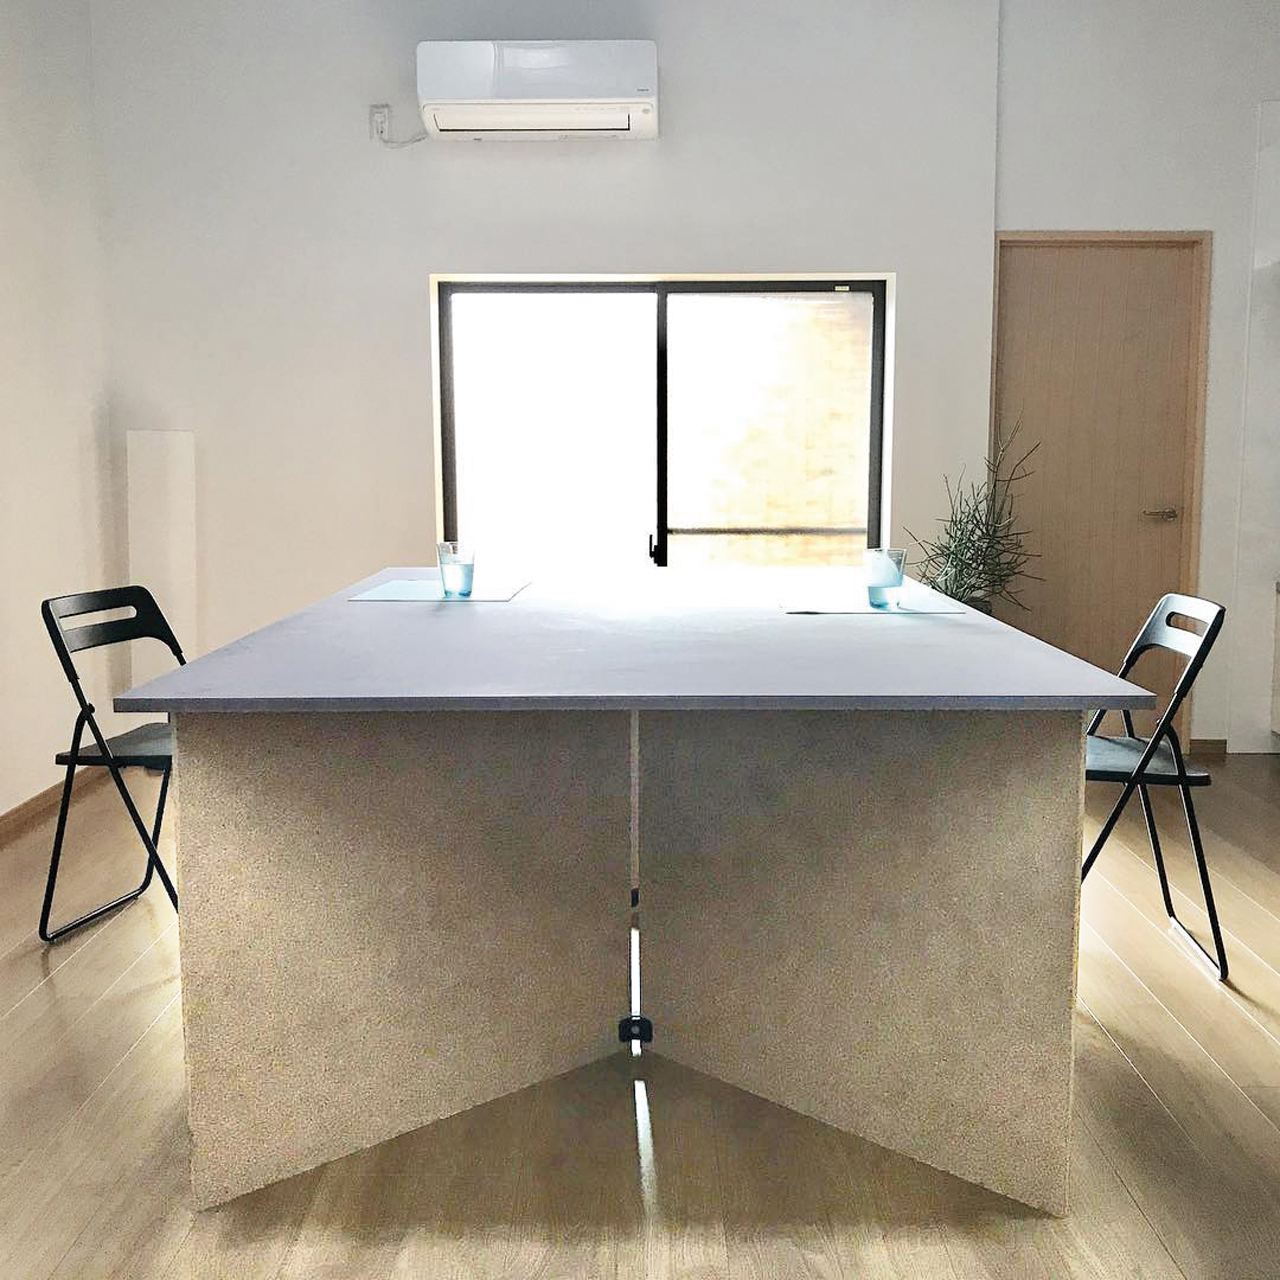 Playwood projects - Temporary office table